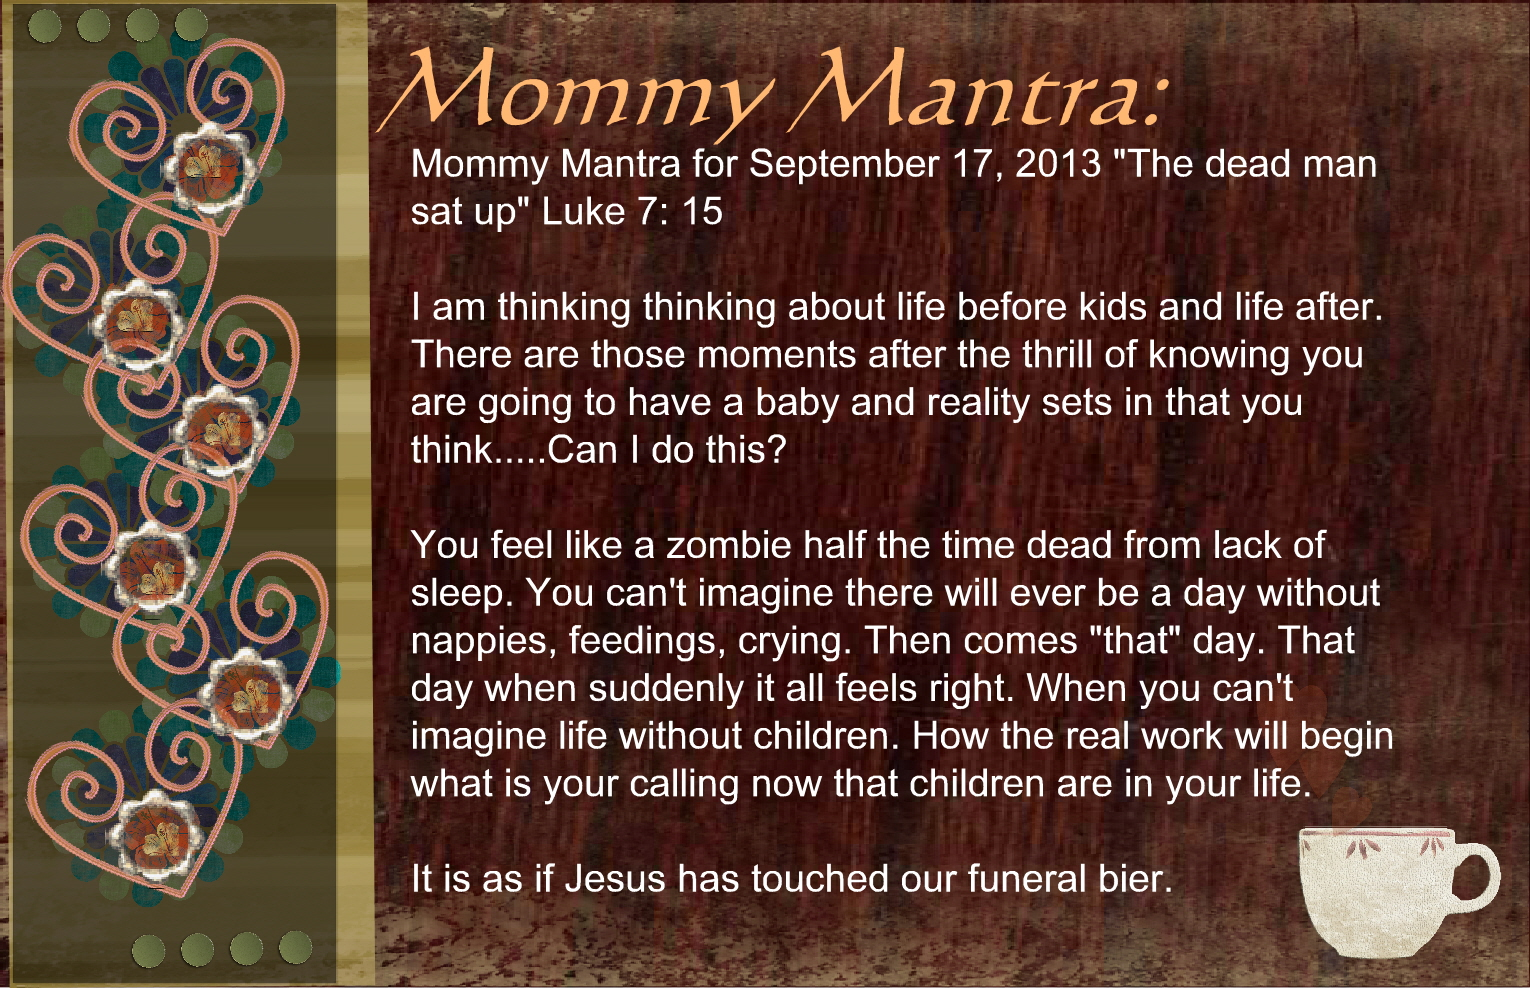 Mommy Mantra September 17, 2013